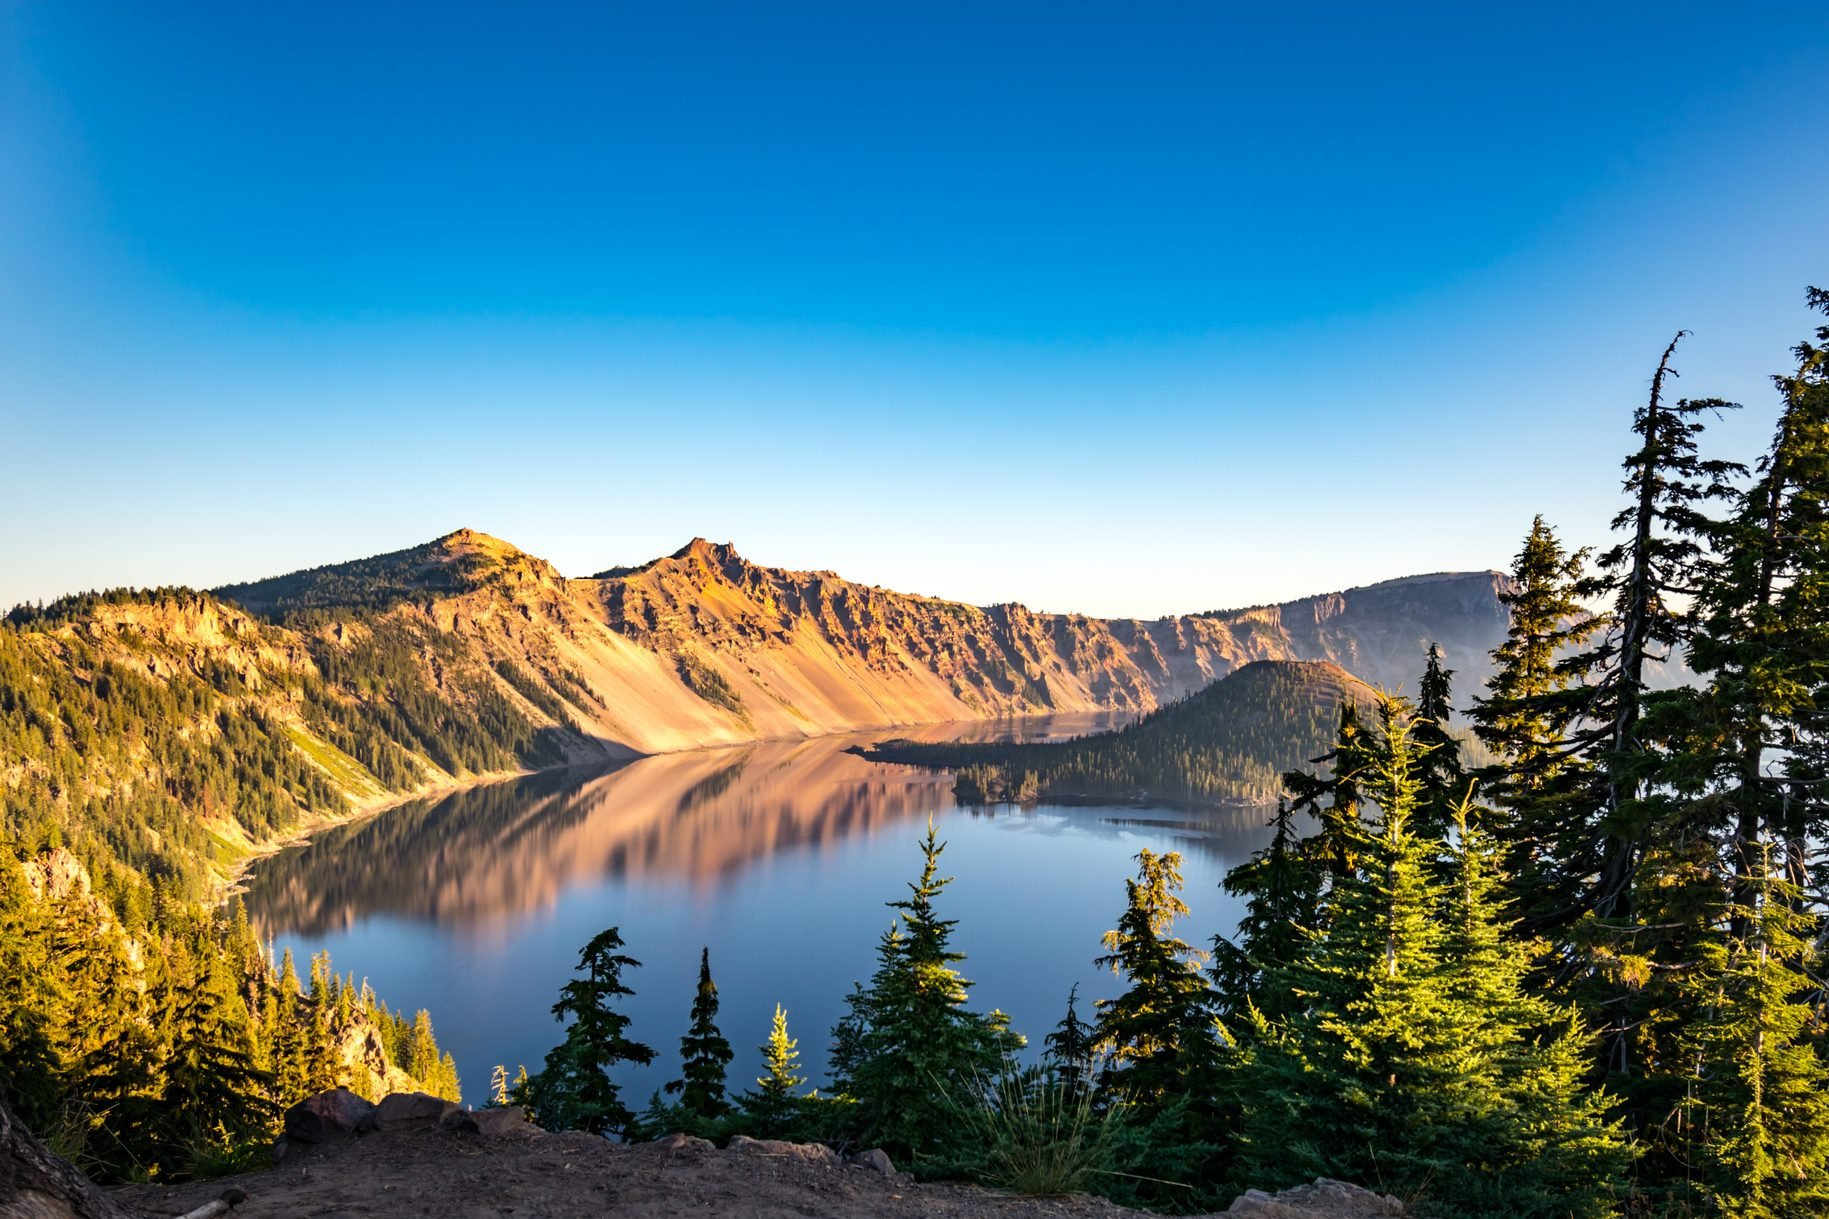 Crater Lake National Park at Sunrise